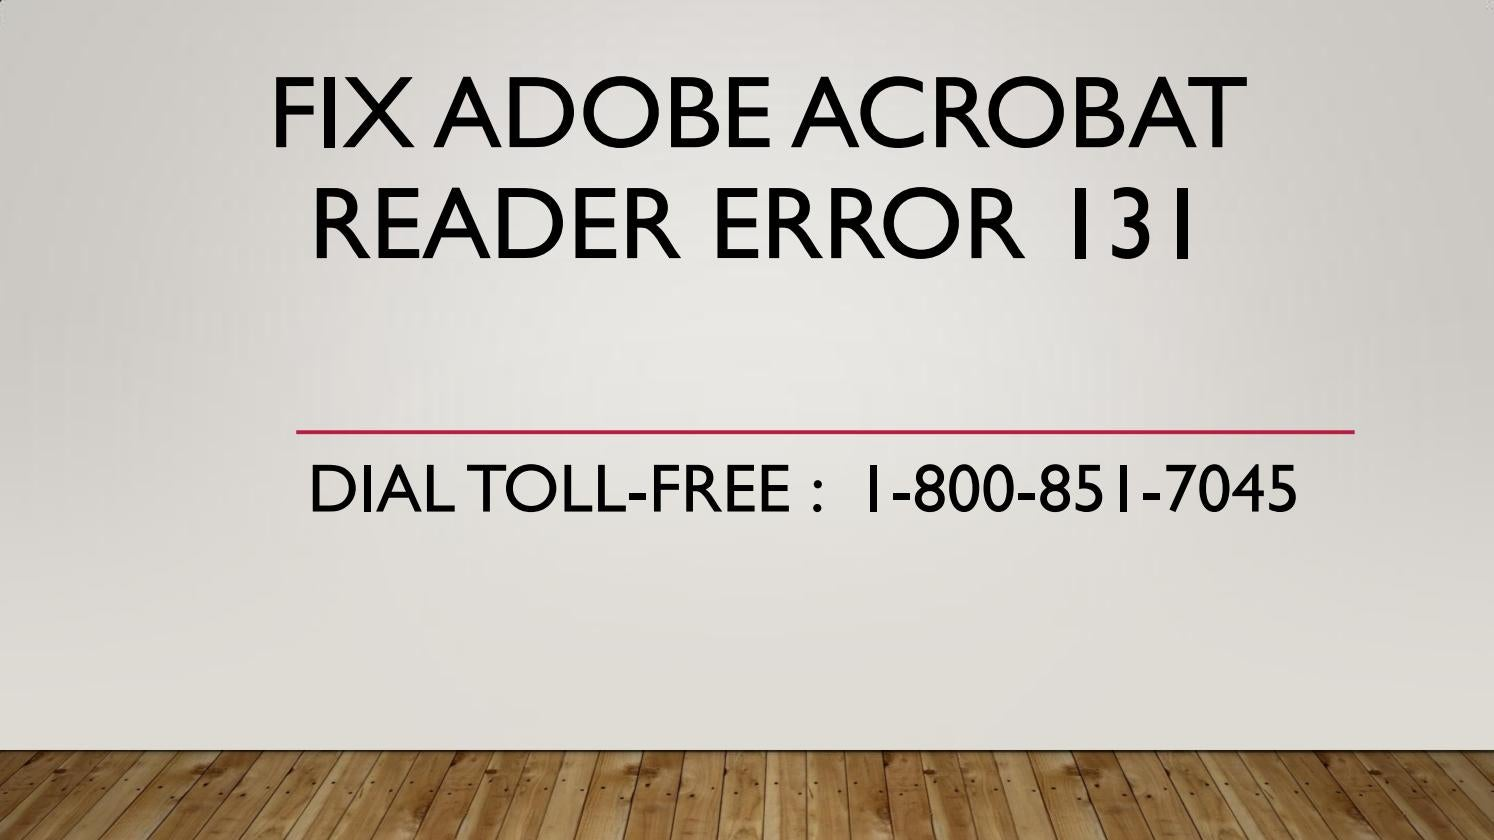 acrobat reader there was a problem reading this document 131